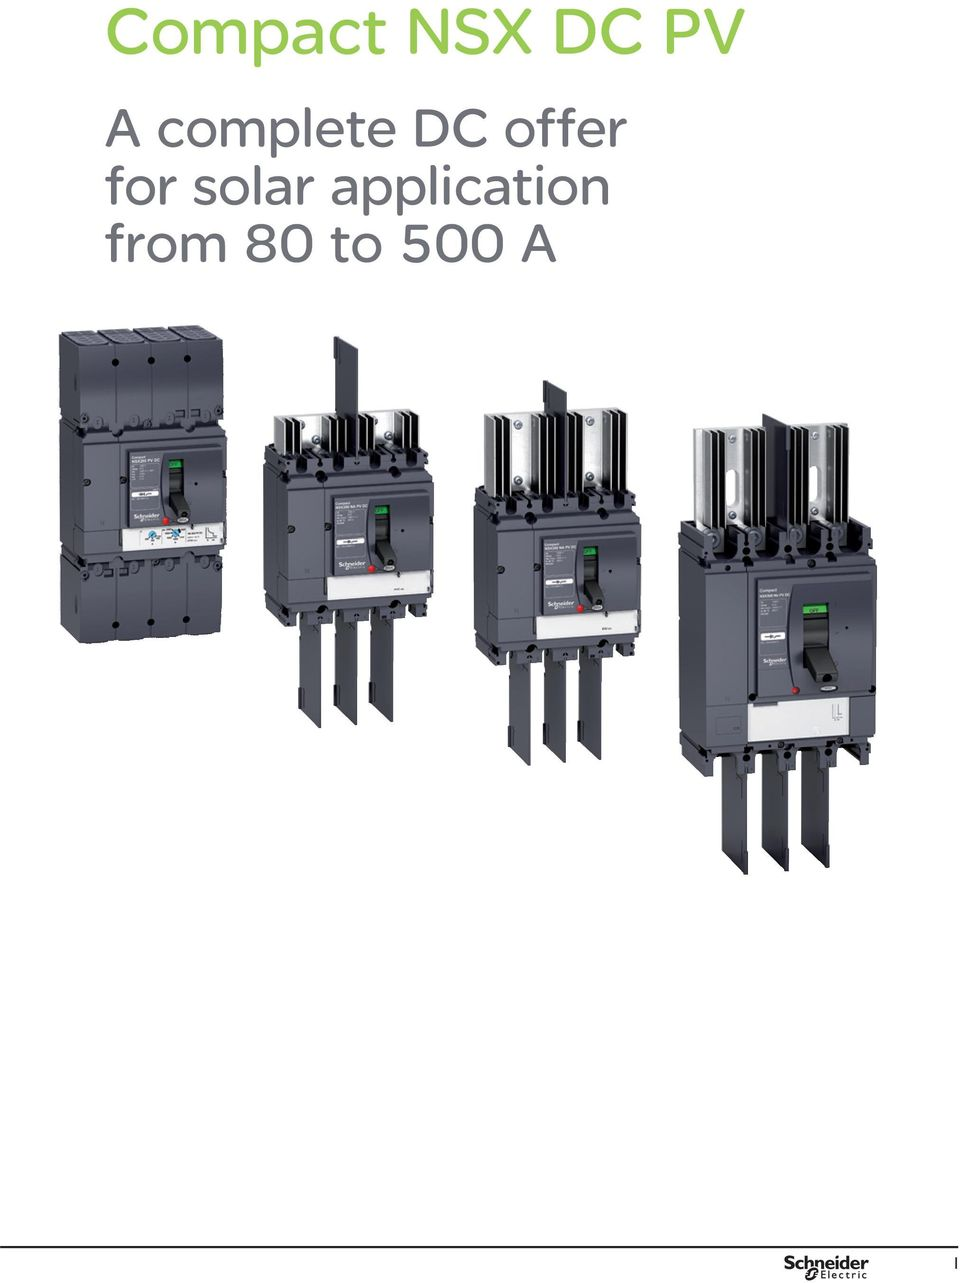 Low Voltage Direct Current Network Compact Nsx Dc Pv Circuit Protection In Lowvoltage Systems Electronics Circuits For You Solar